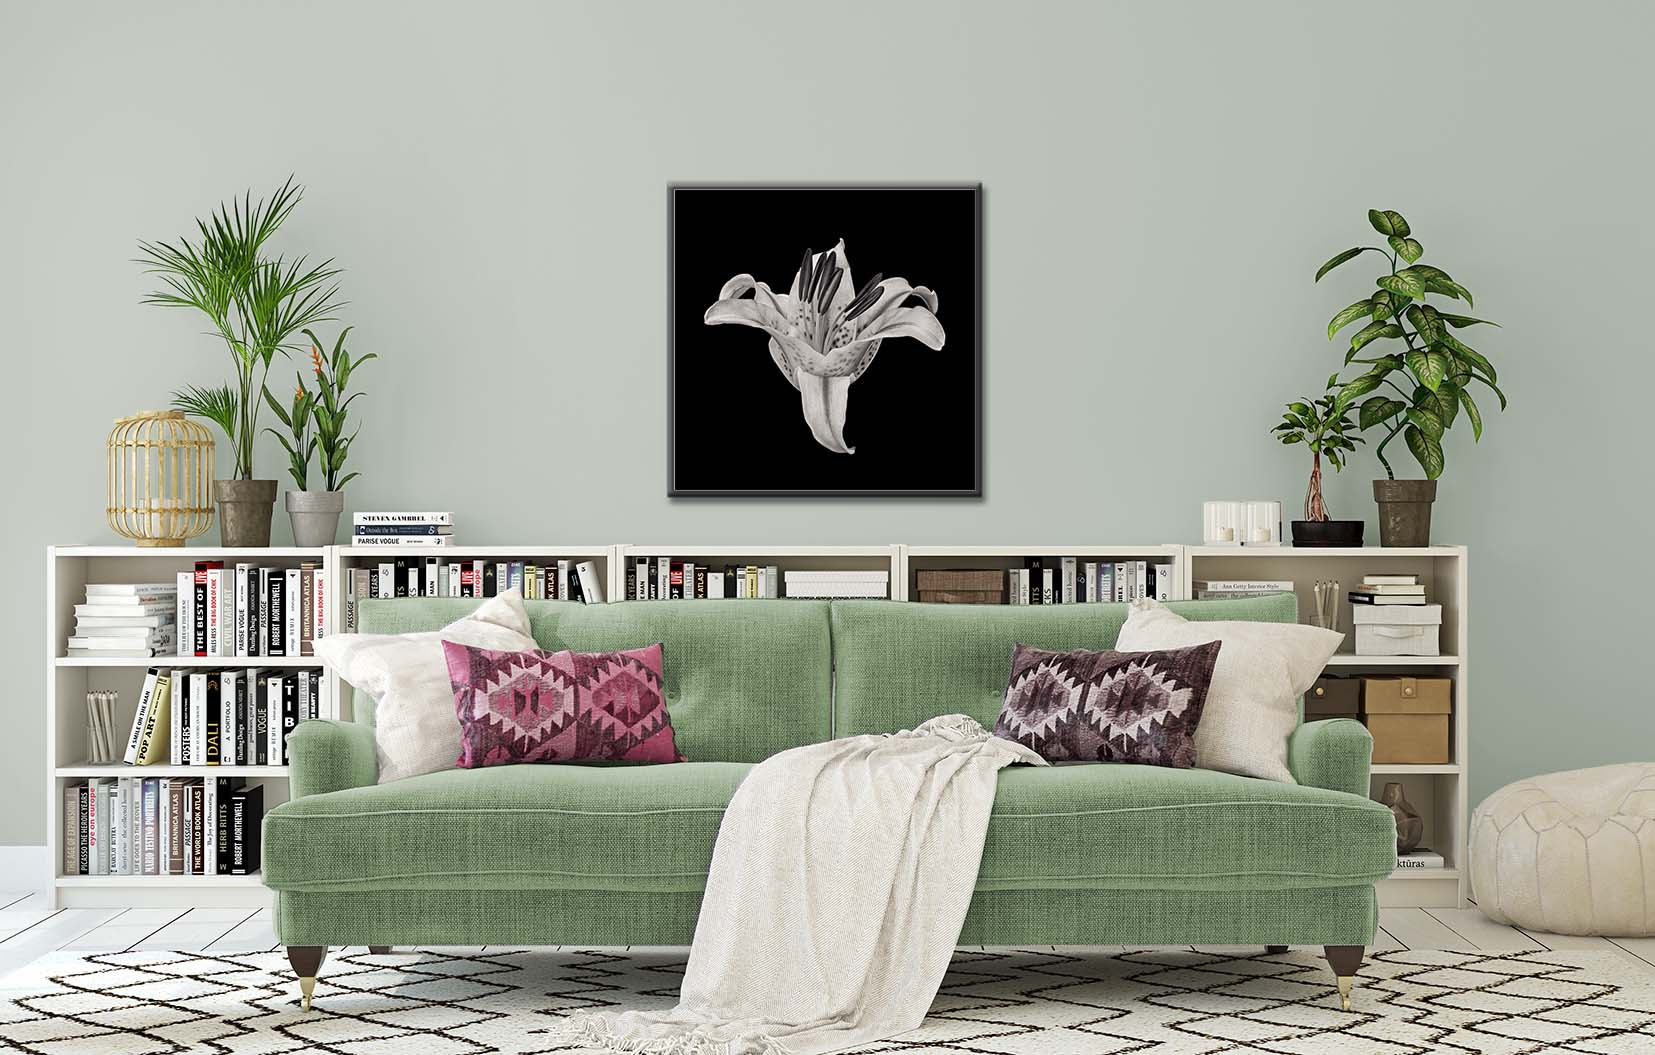 A black and white limited edition print of a stargazer lily by fine art photographer Paul Coghlin